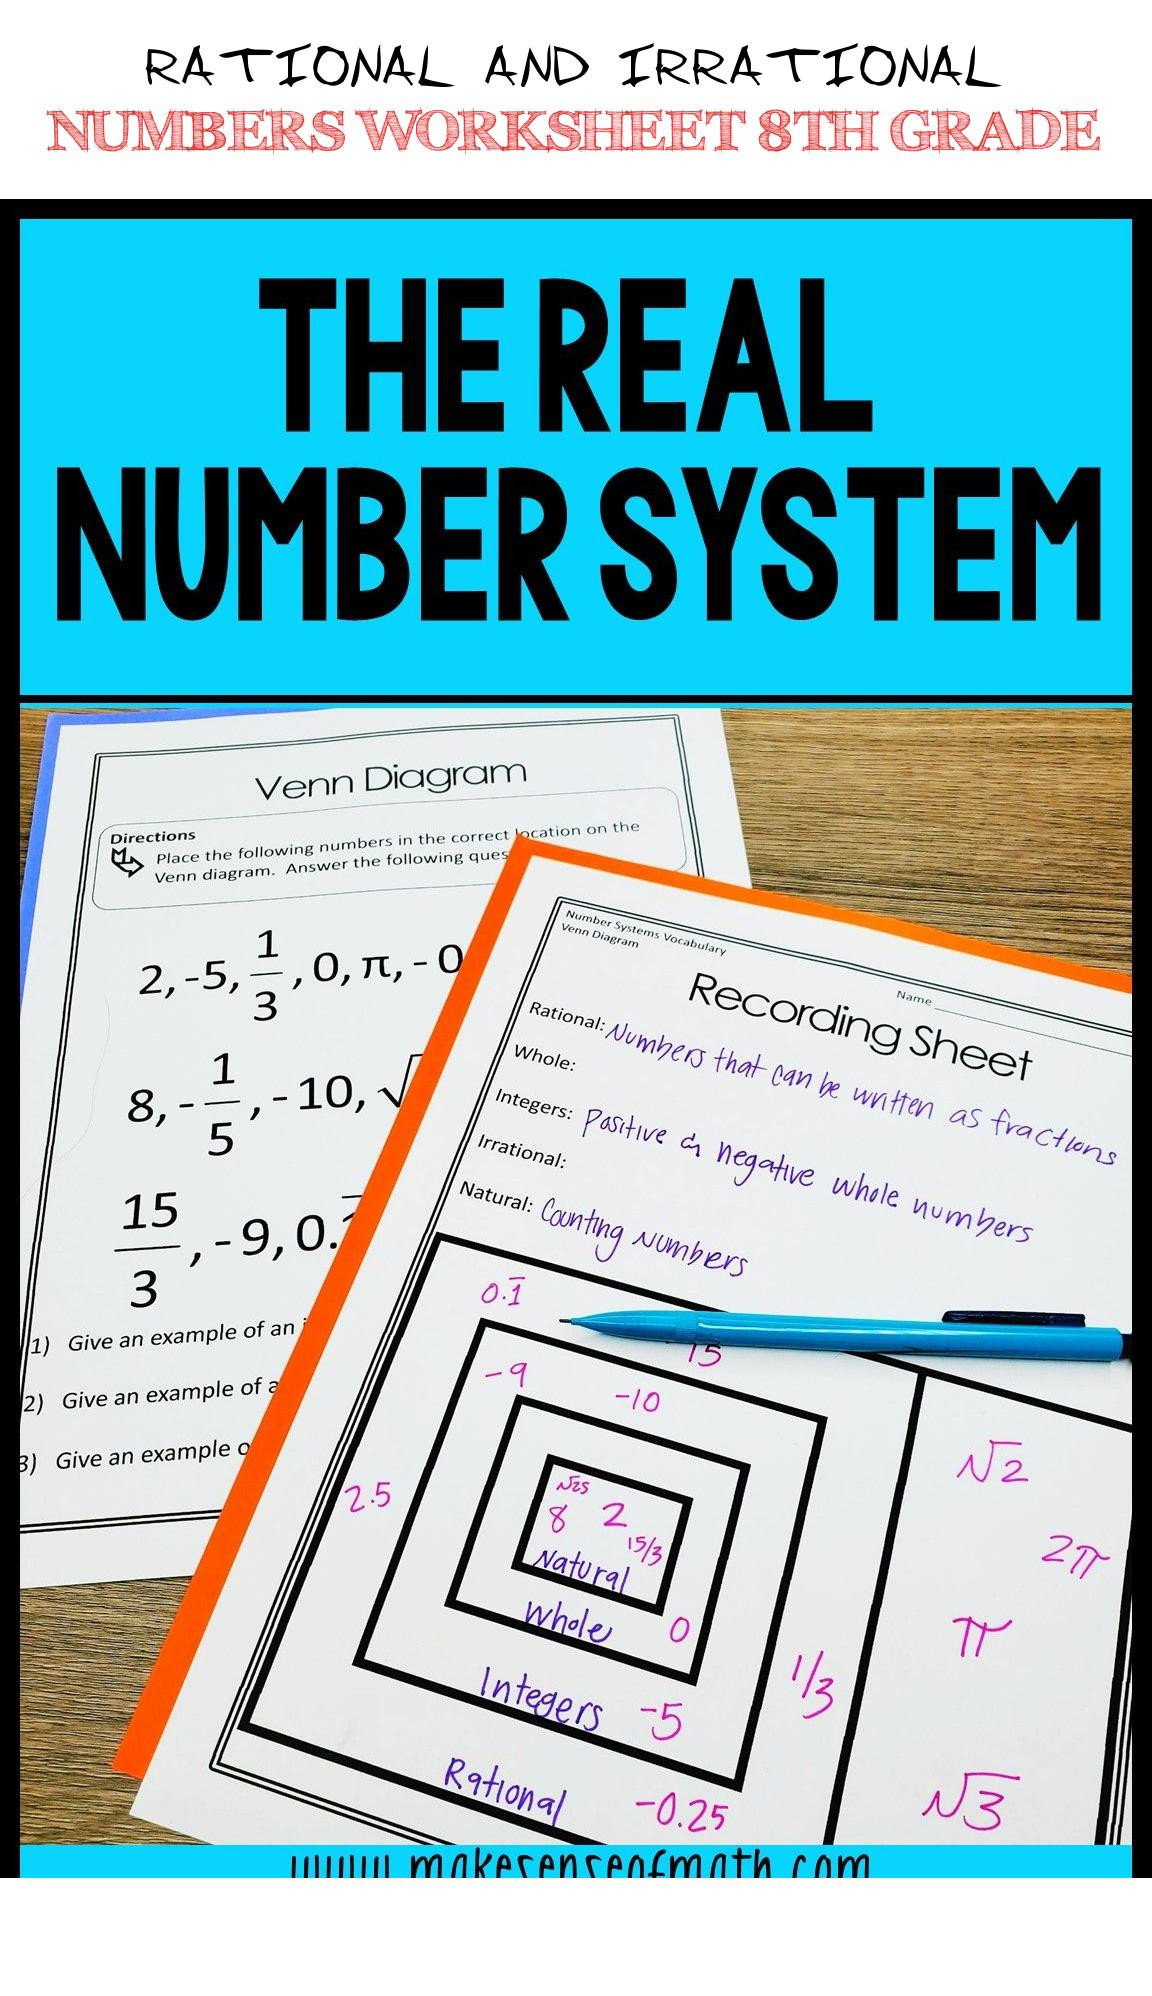 Rational and Irrational Numbers Worksheet Rational and Irrational Numbers Worksheet 8th Grade Rational